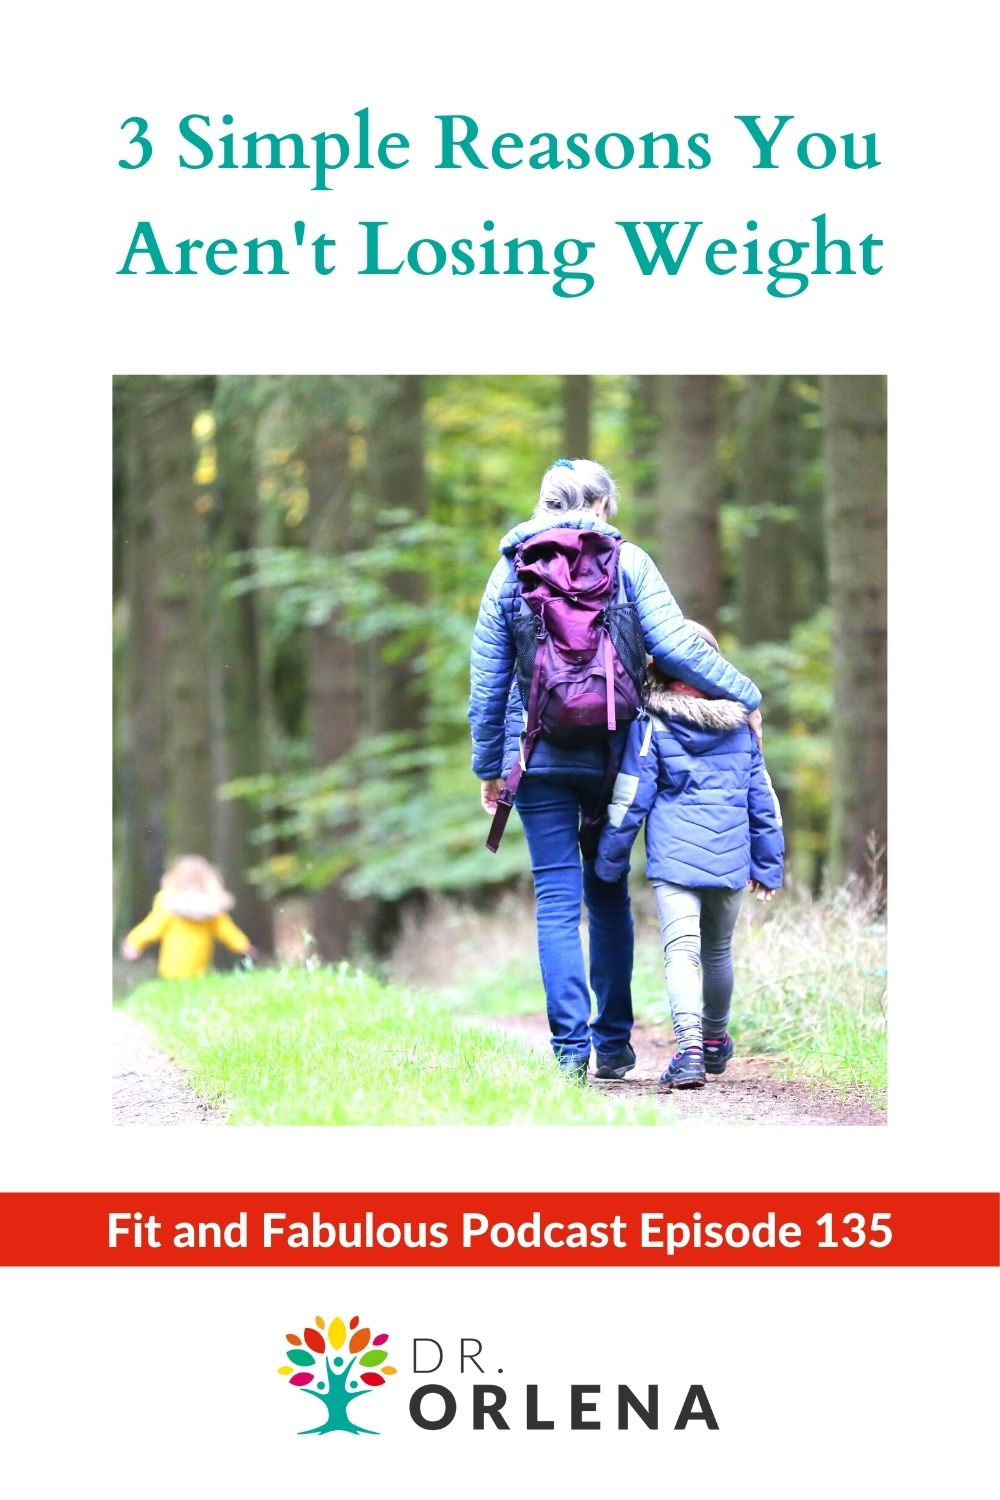 A woman hiking with her children #weightloss #wellness #habits #healthyliving